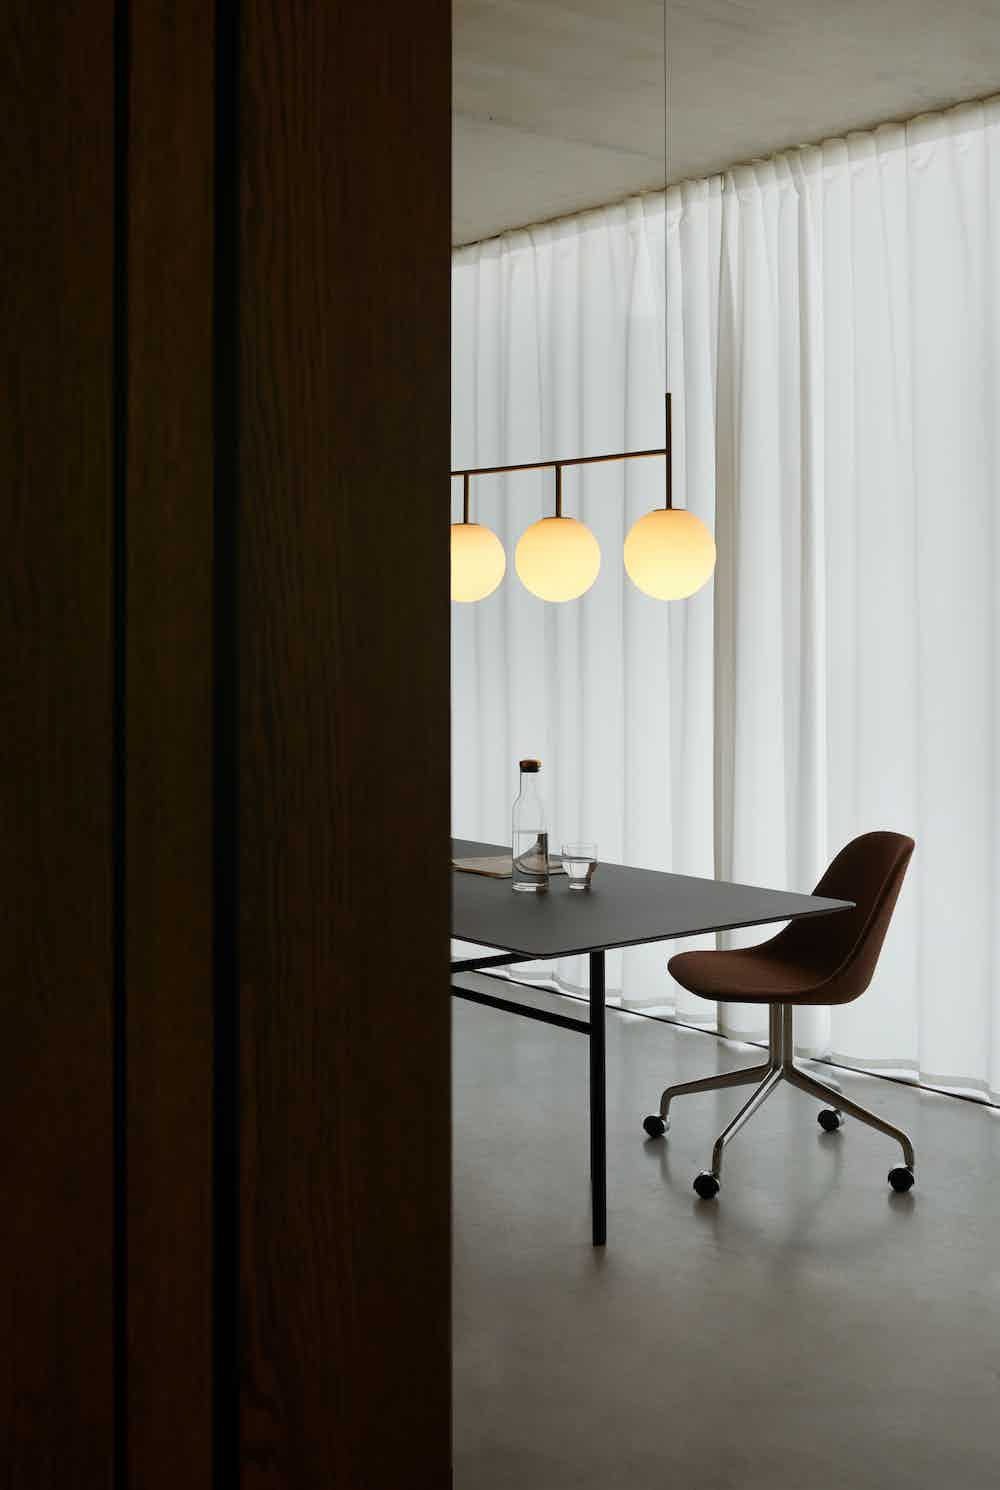 Menu furniture tr bulb suspension frame insitu lit haute living